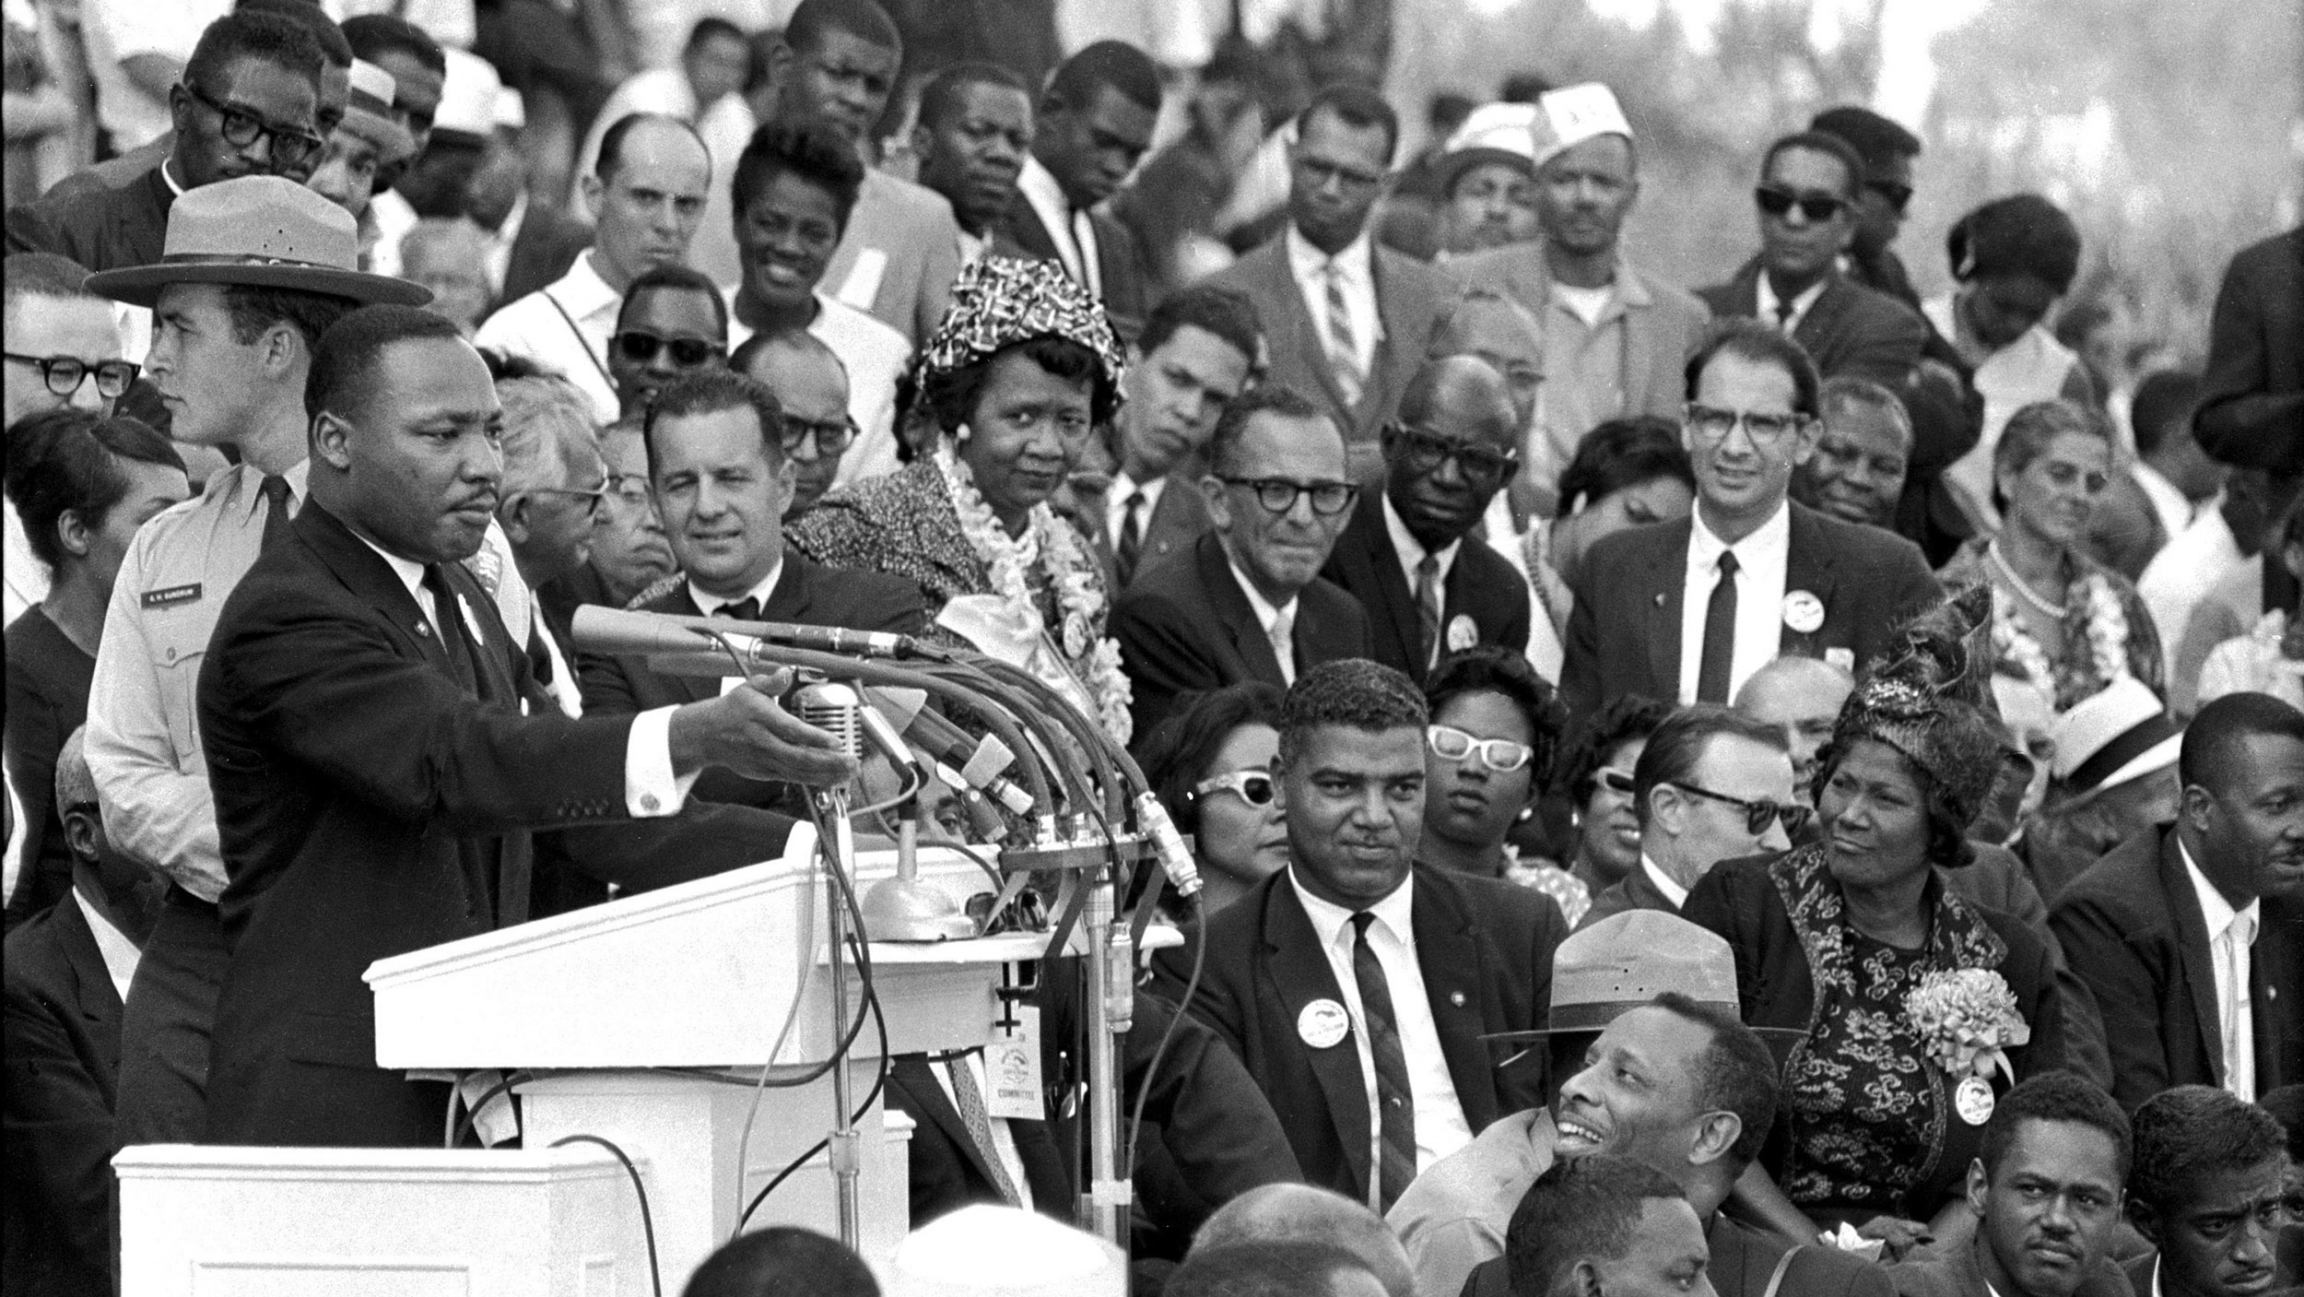 Rev. Dr. Martin Luther King Jr. is shown in a black and white photograph standing at a podium with several microphones and a crowd of people bedhind him.